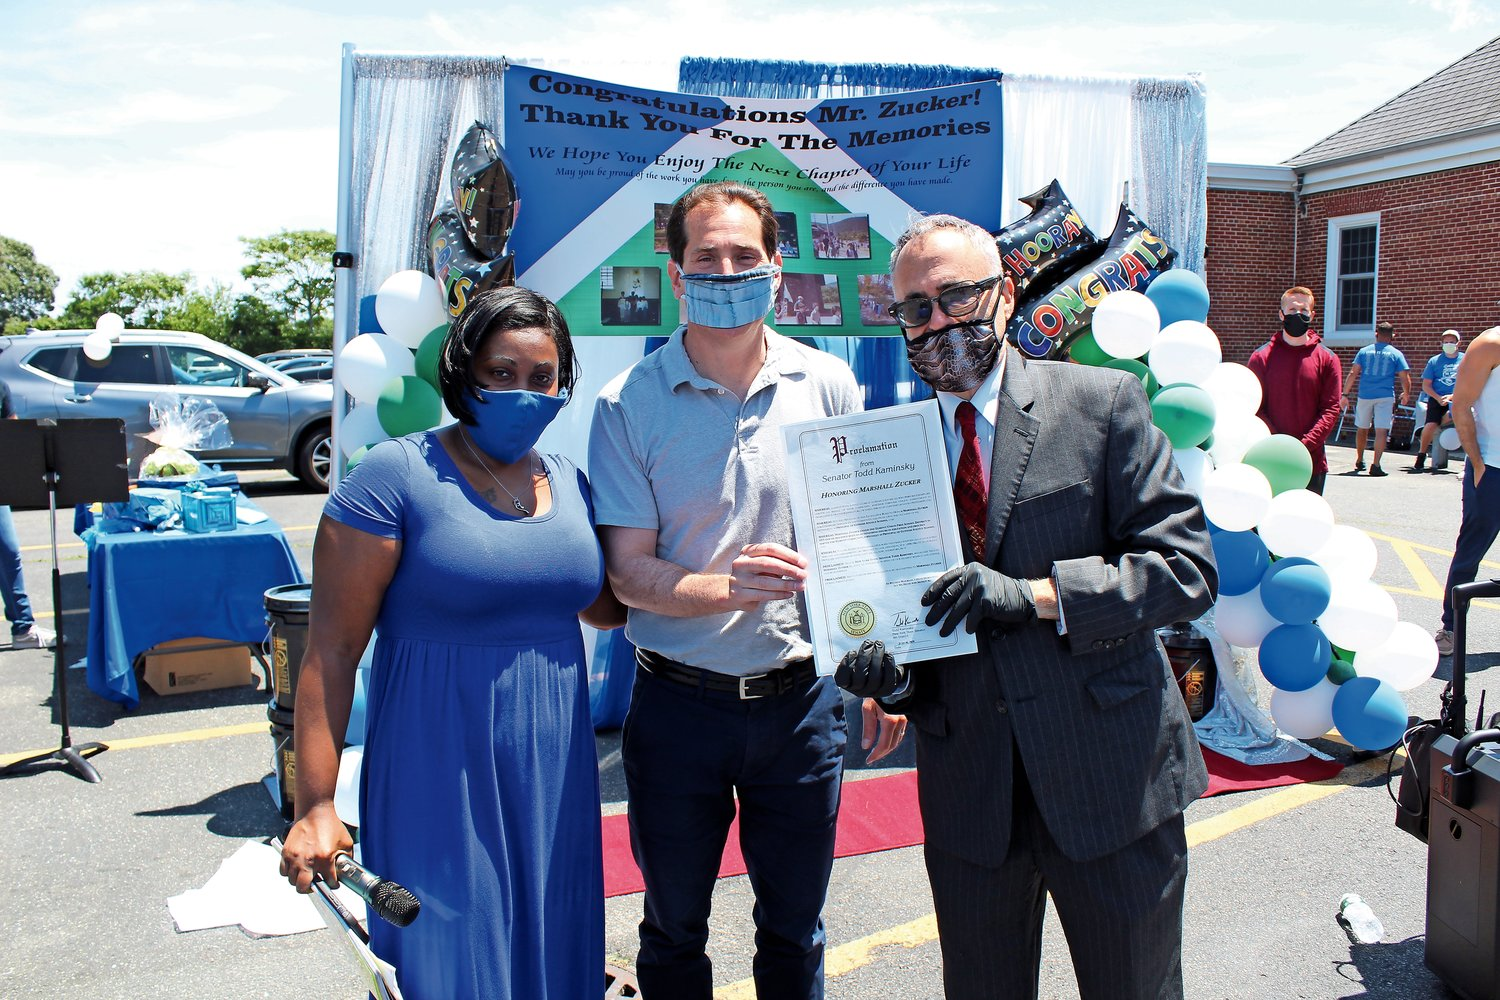 Gotham Avenue Principal Marshall Zucker, right, received a proclamation in honor of his retirement from State Sen. Todd Kaminsky on June 16. They were with Parent Teacher Association President Natasha Appleby.